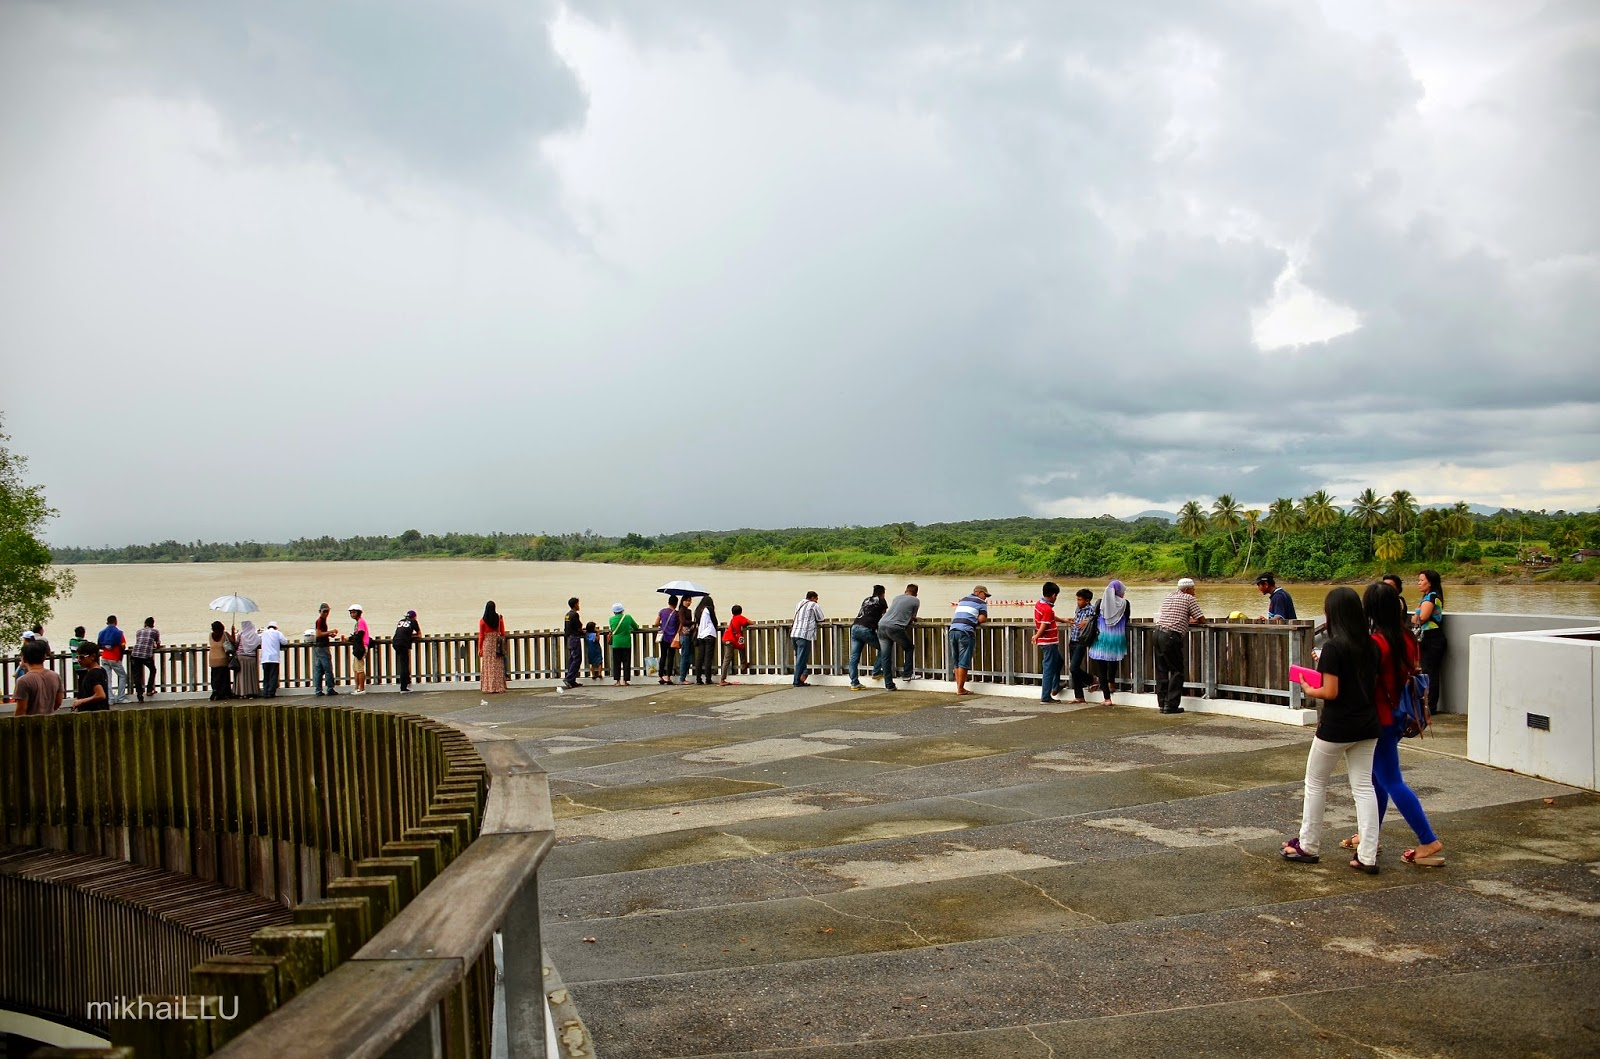 The panoramic vantage view of Batang Lupar | mikhaiLLU